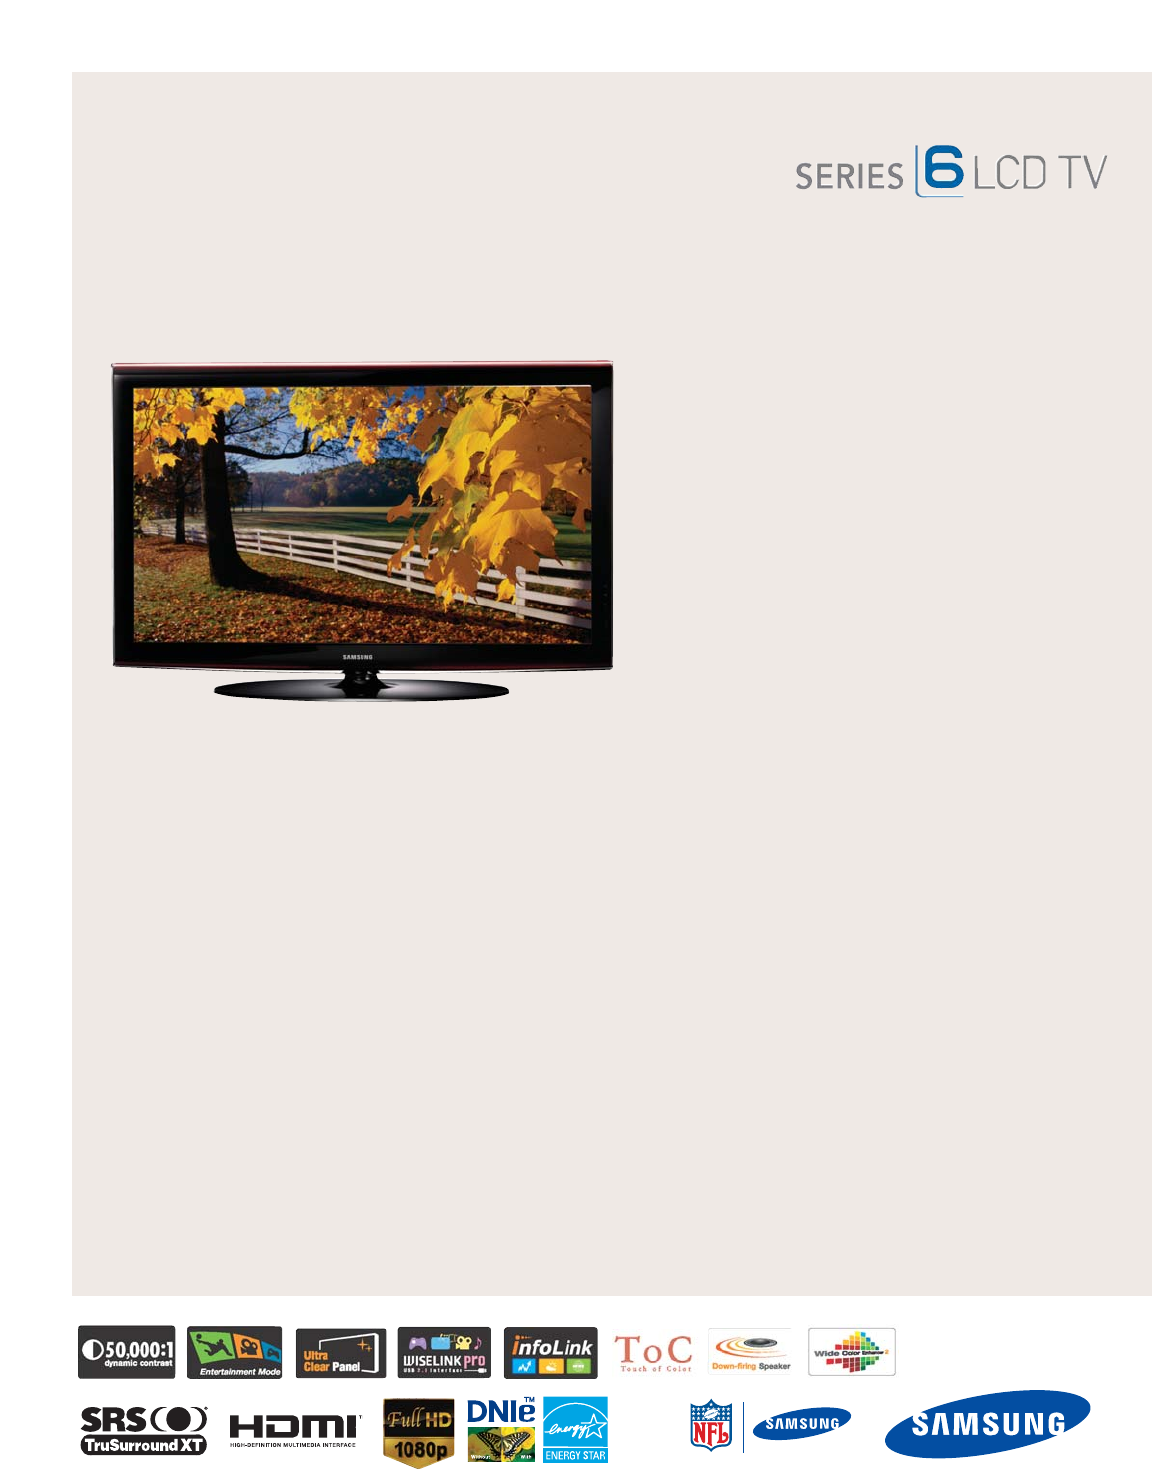 samsung flat panel television ln40a650 user guide manualsonline com rh tv manualsonline com Samsung Tablet Ce0168 Instruction Manual Samsung Tablet Ce0168 Instruction Manual